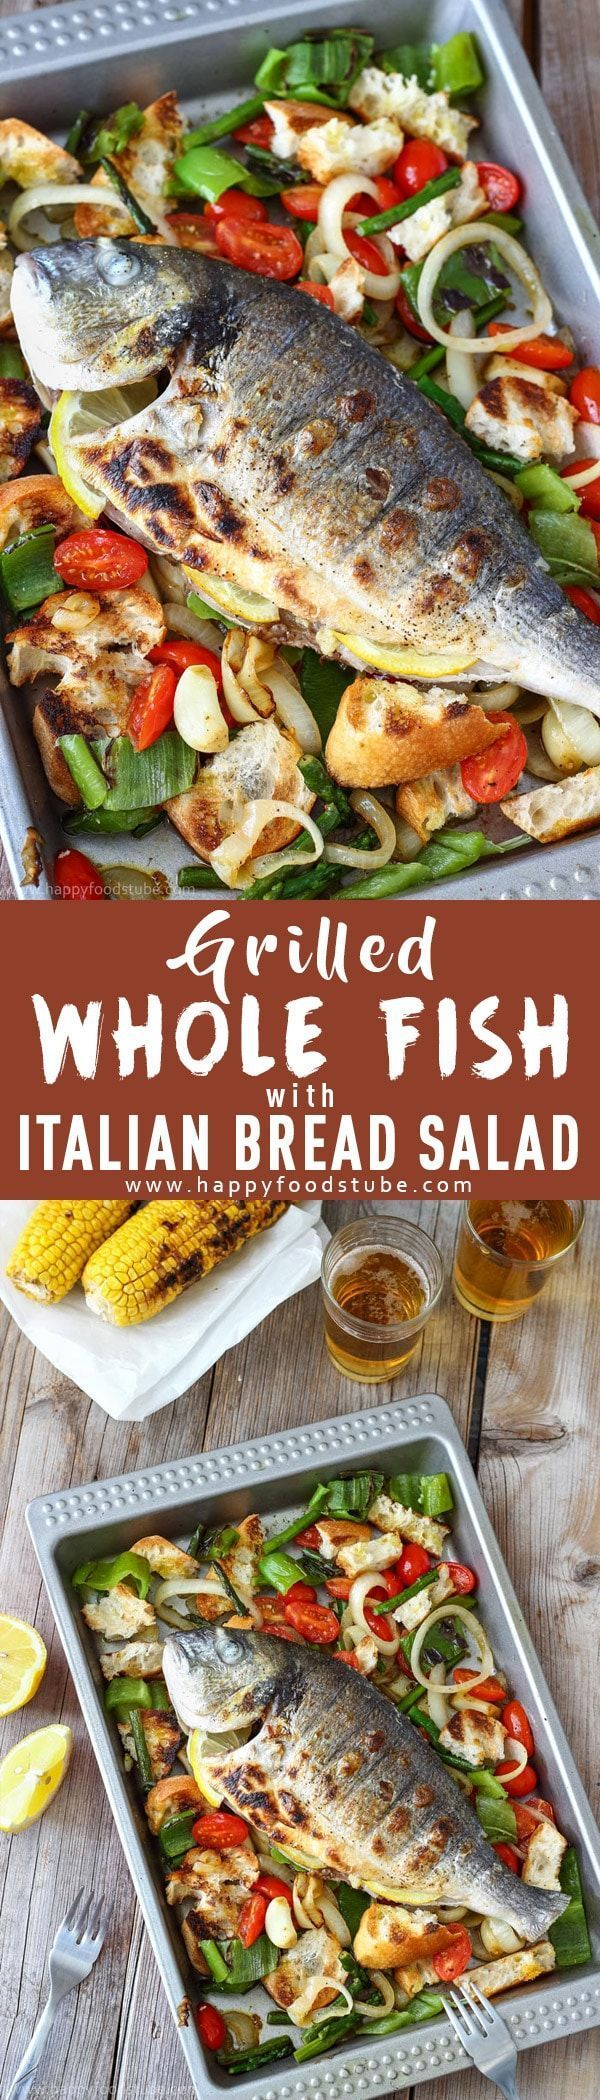 Grilled whole fish with Italian bread salad is the perfect summer recipe. Juicy flesh is hidden under crispy skin and served on a bed of grilled vegetables & bread. Easy to prepare and quick to grill via @happyfoodstube